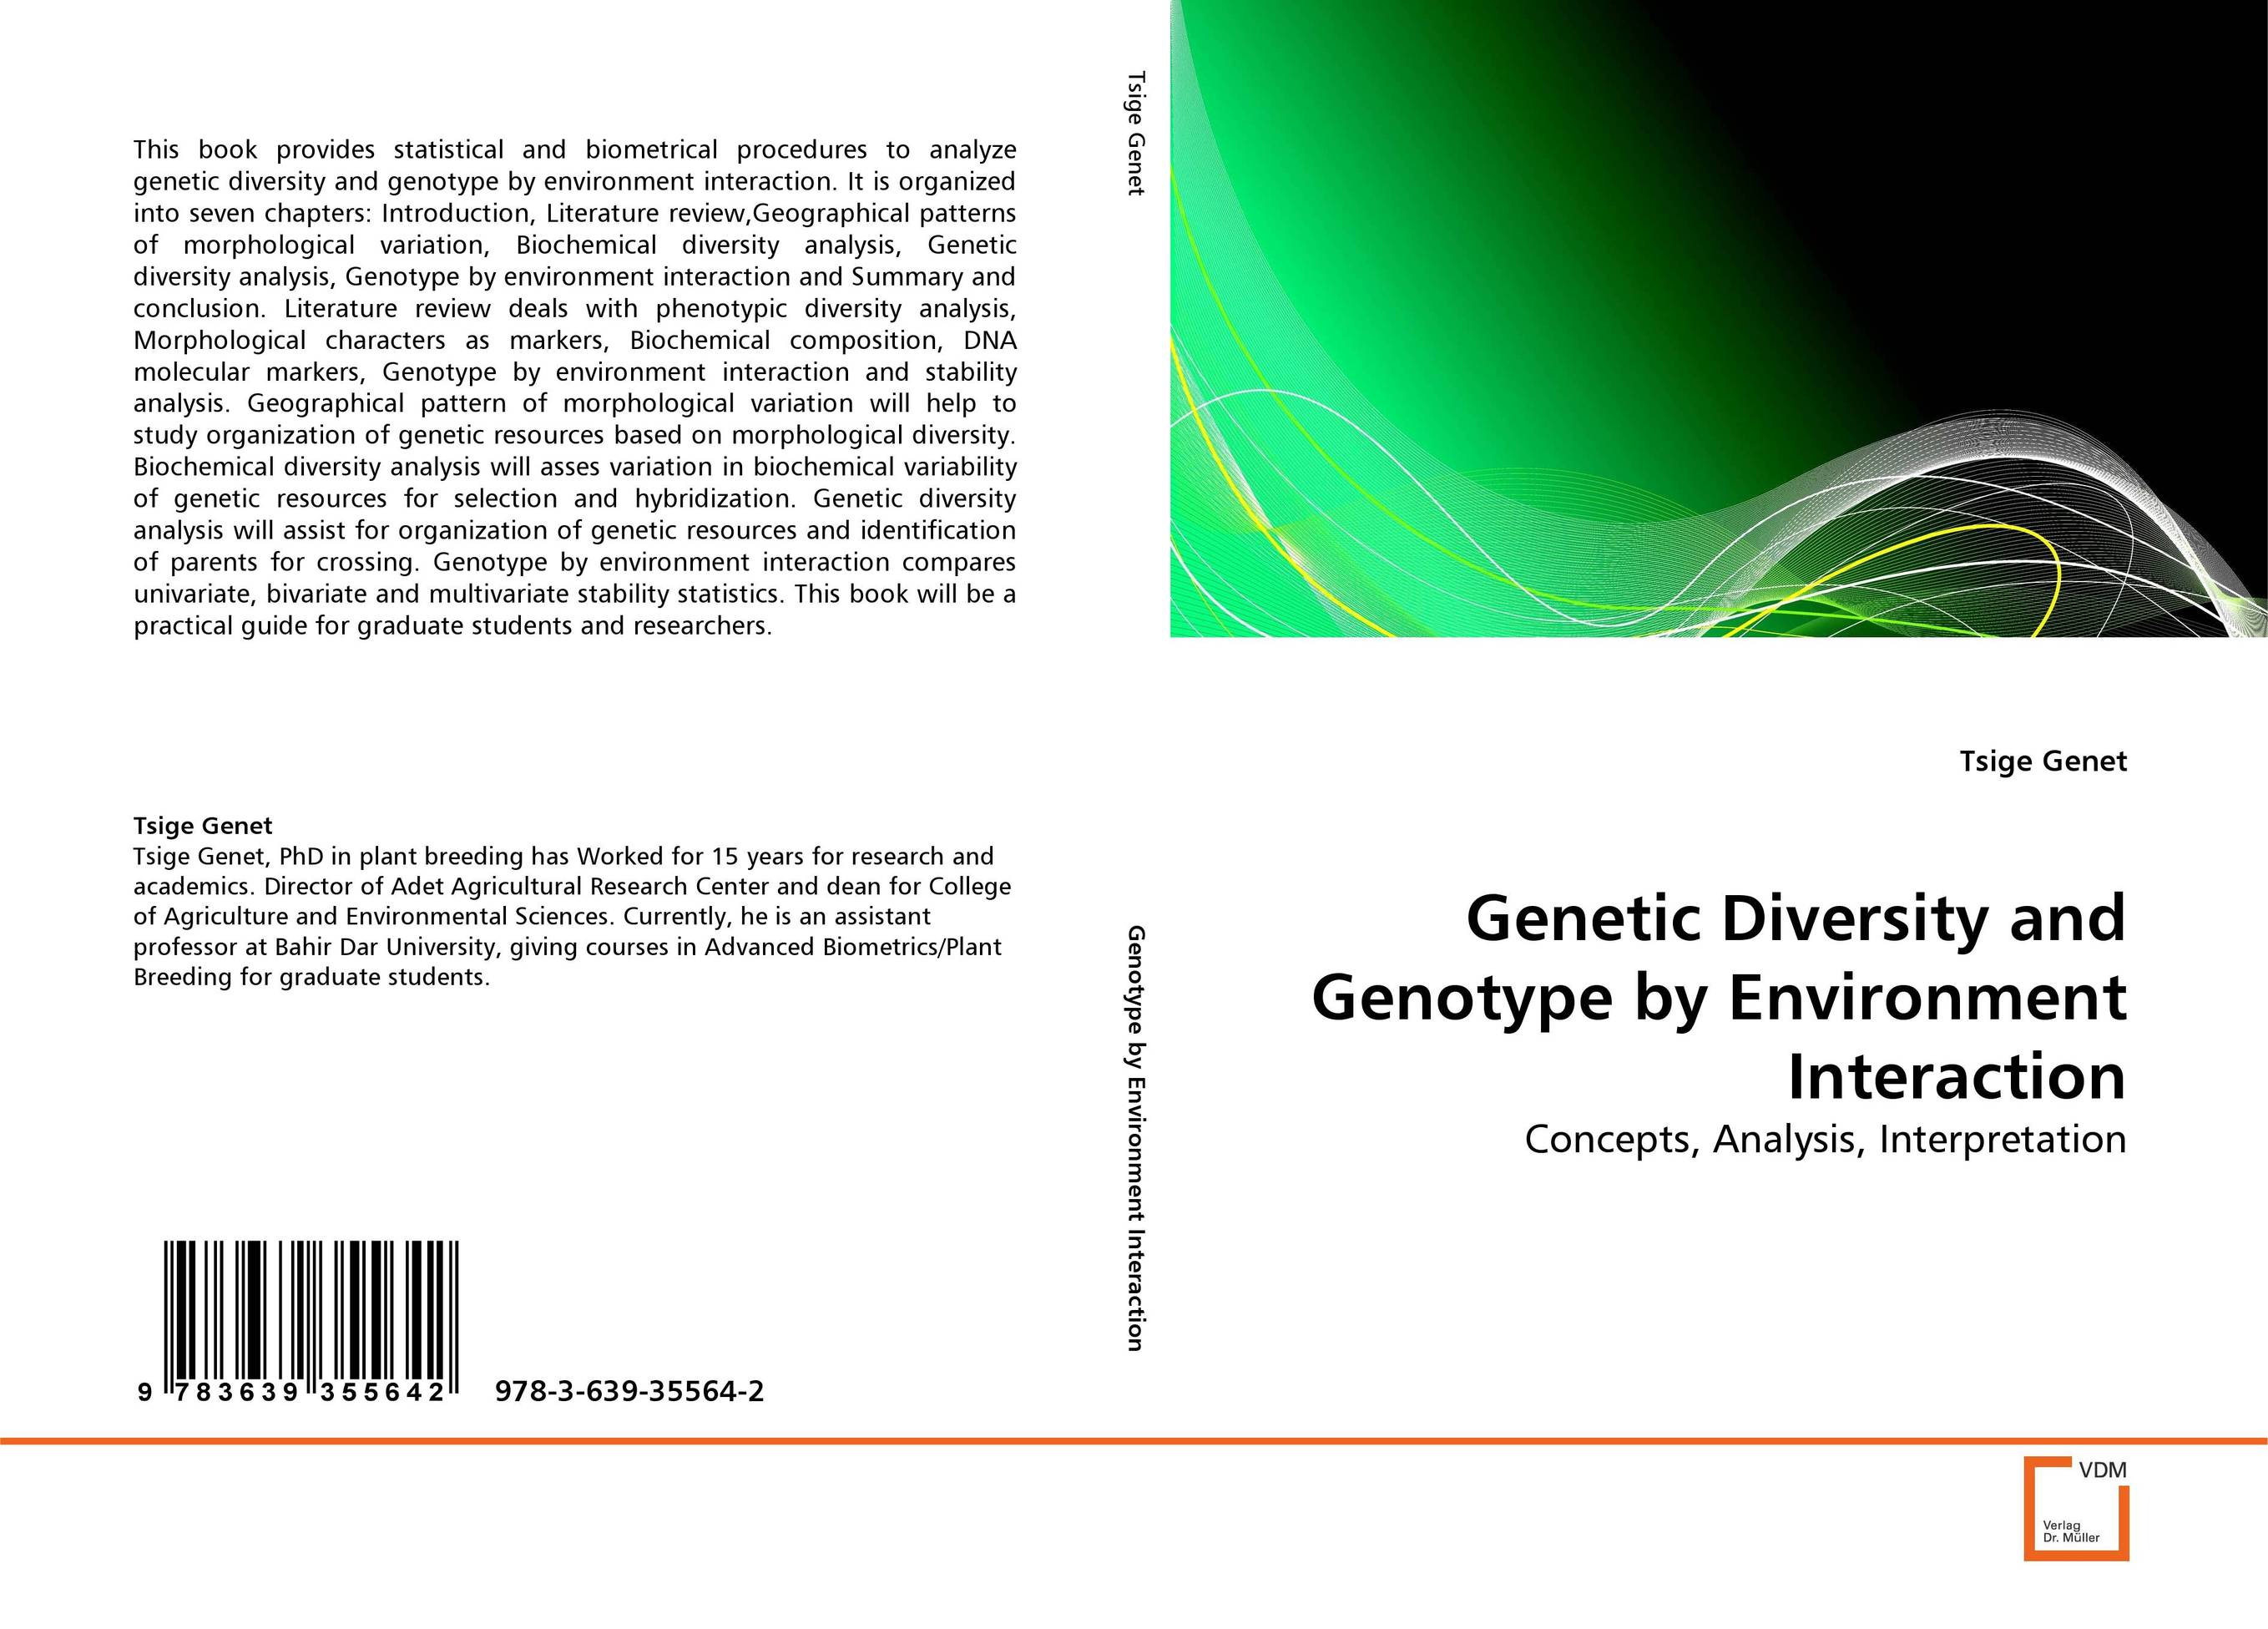 Genetic Diversity and Genotype by Environment Interaction sociologies of interaction